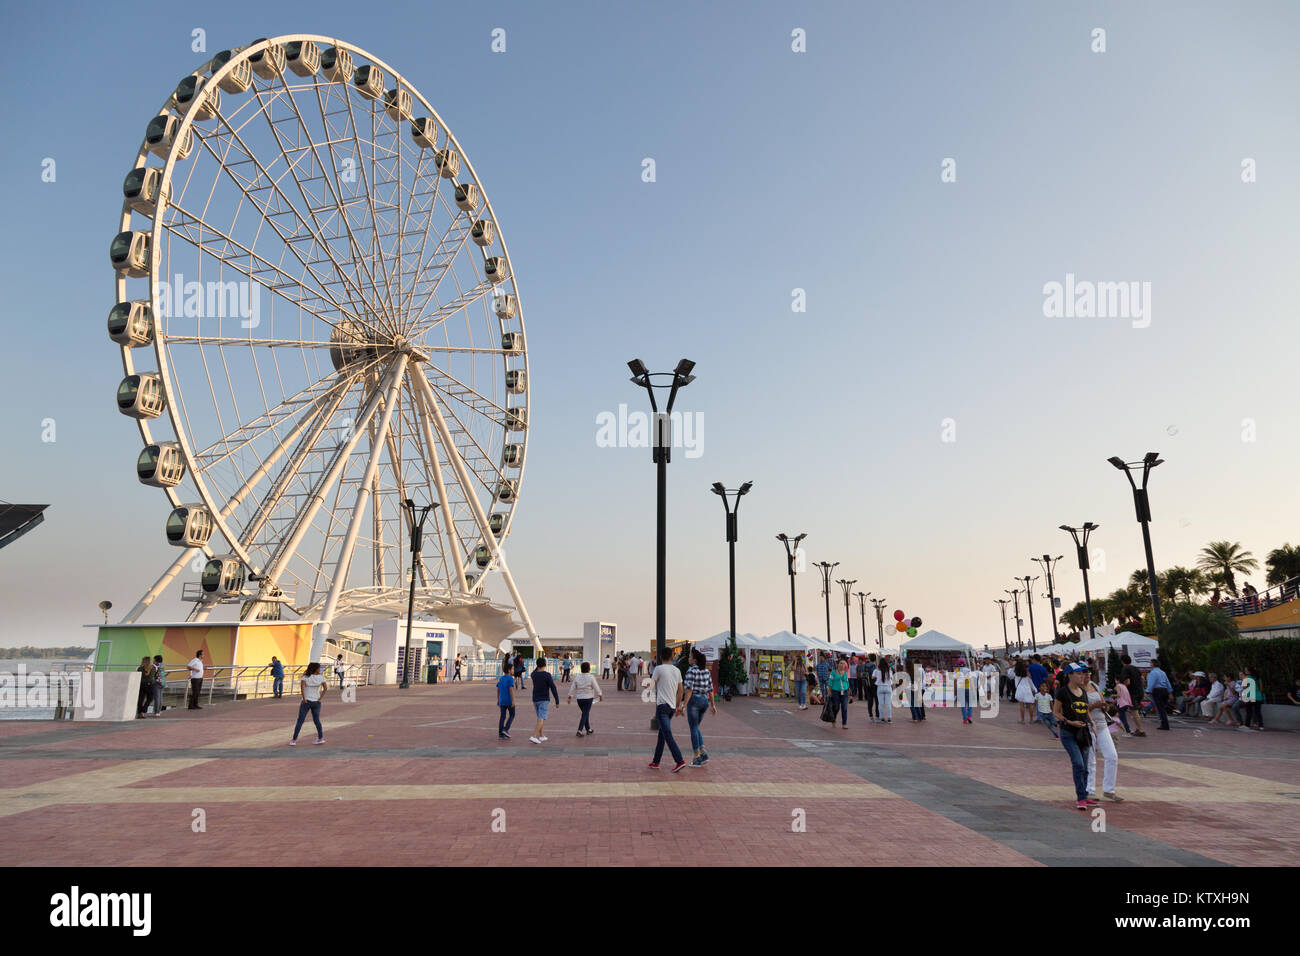 Guayaquil, Ecuador - La Perla, the Guayaquil ferris wheel on the waterfront or Malecon, Guayaquil, Ecuador South Stock Photo